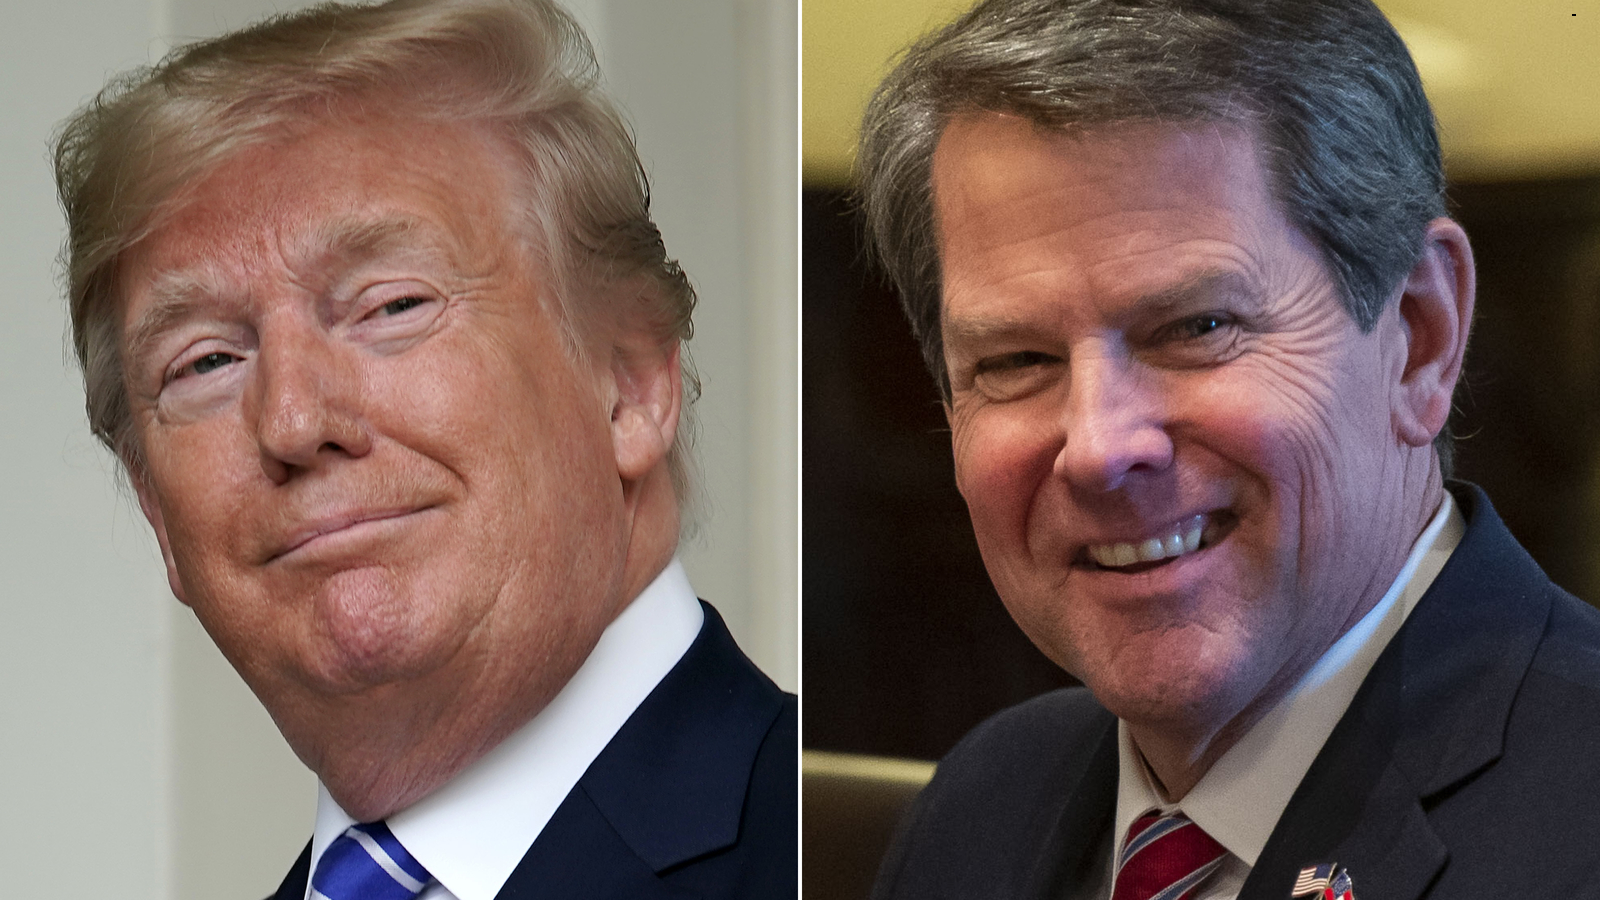 Trump pressured Georgia governor in call to help overturn Biden's win in state